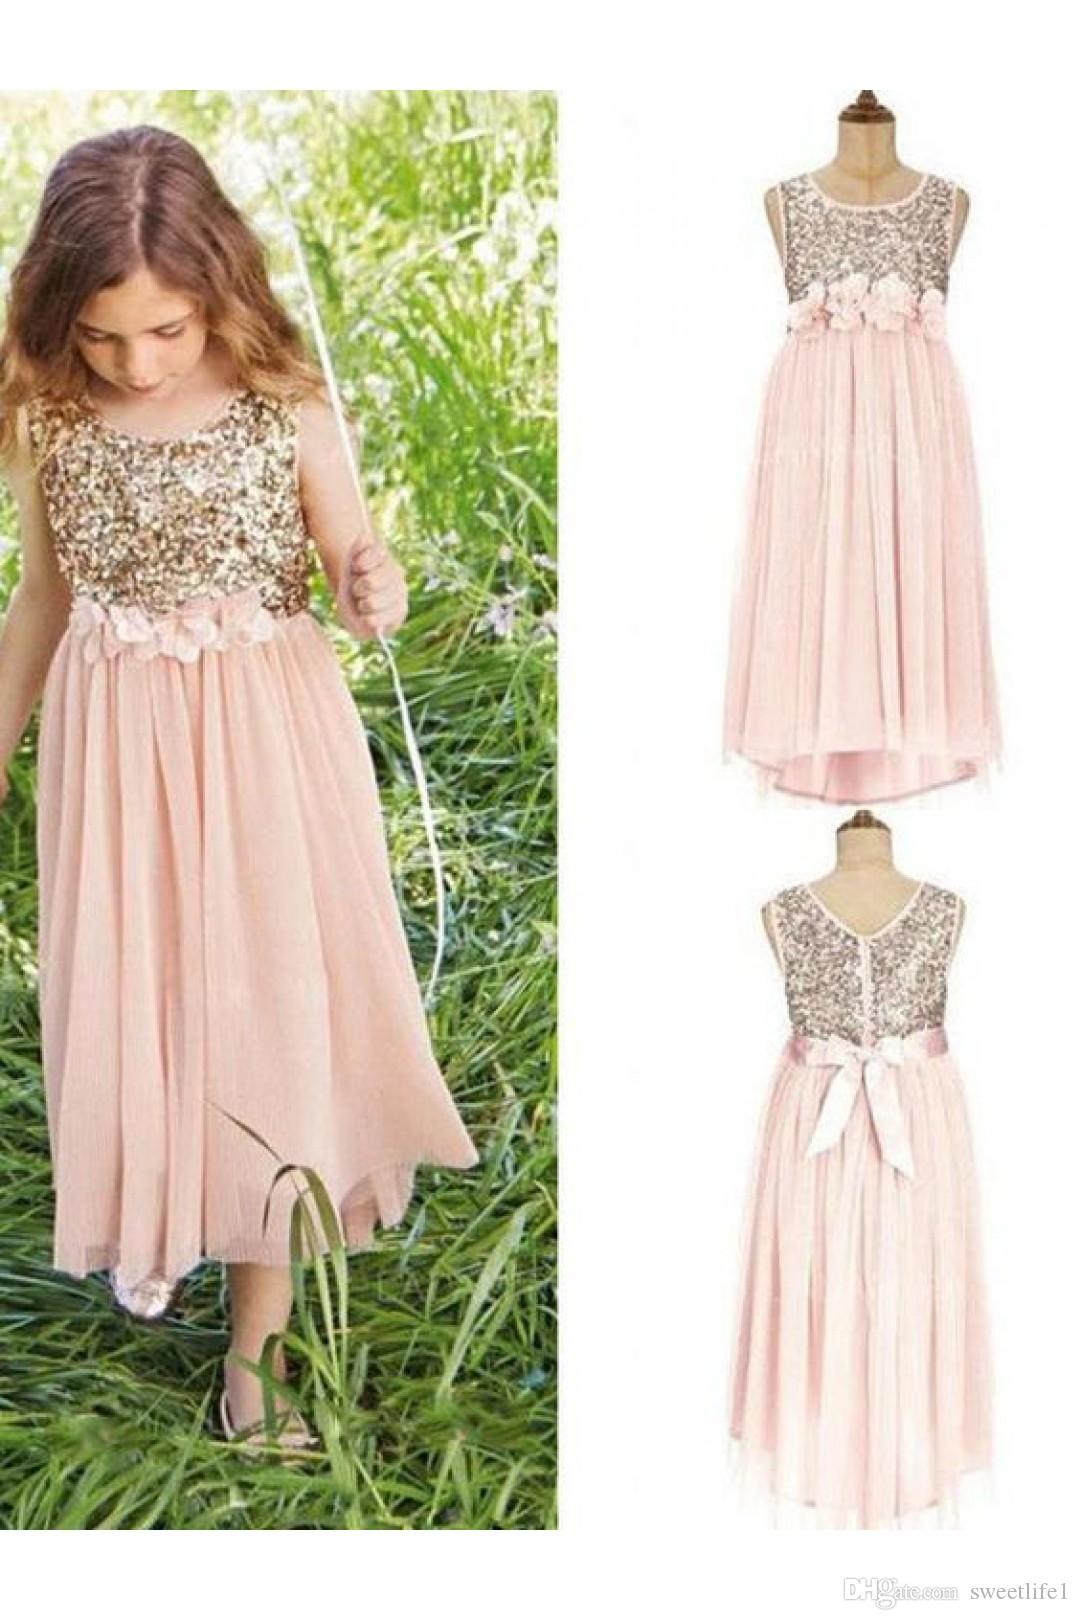 Scoop Neck Sequin Flower Girls Dresses 2020 Top Floral belt with bowknot Junior Bridesmaid Dress with Chiffon Skirt First Communion Dresses